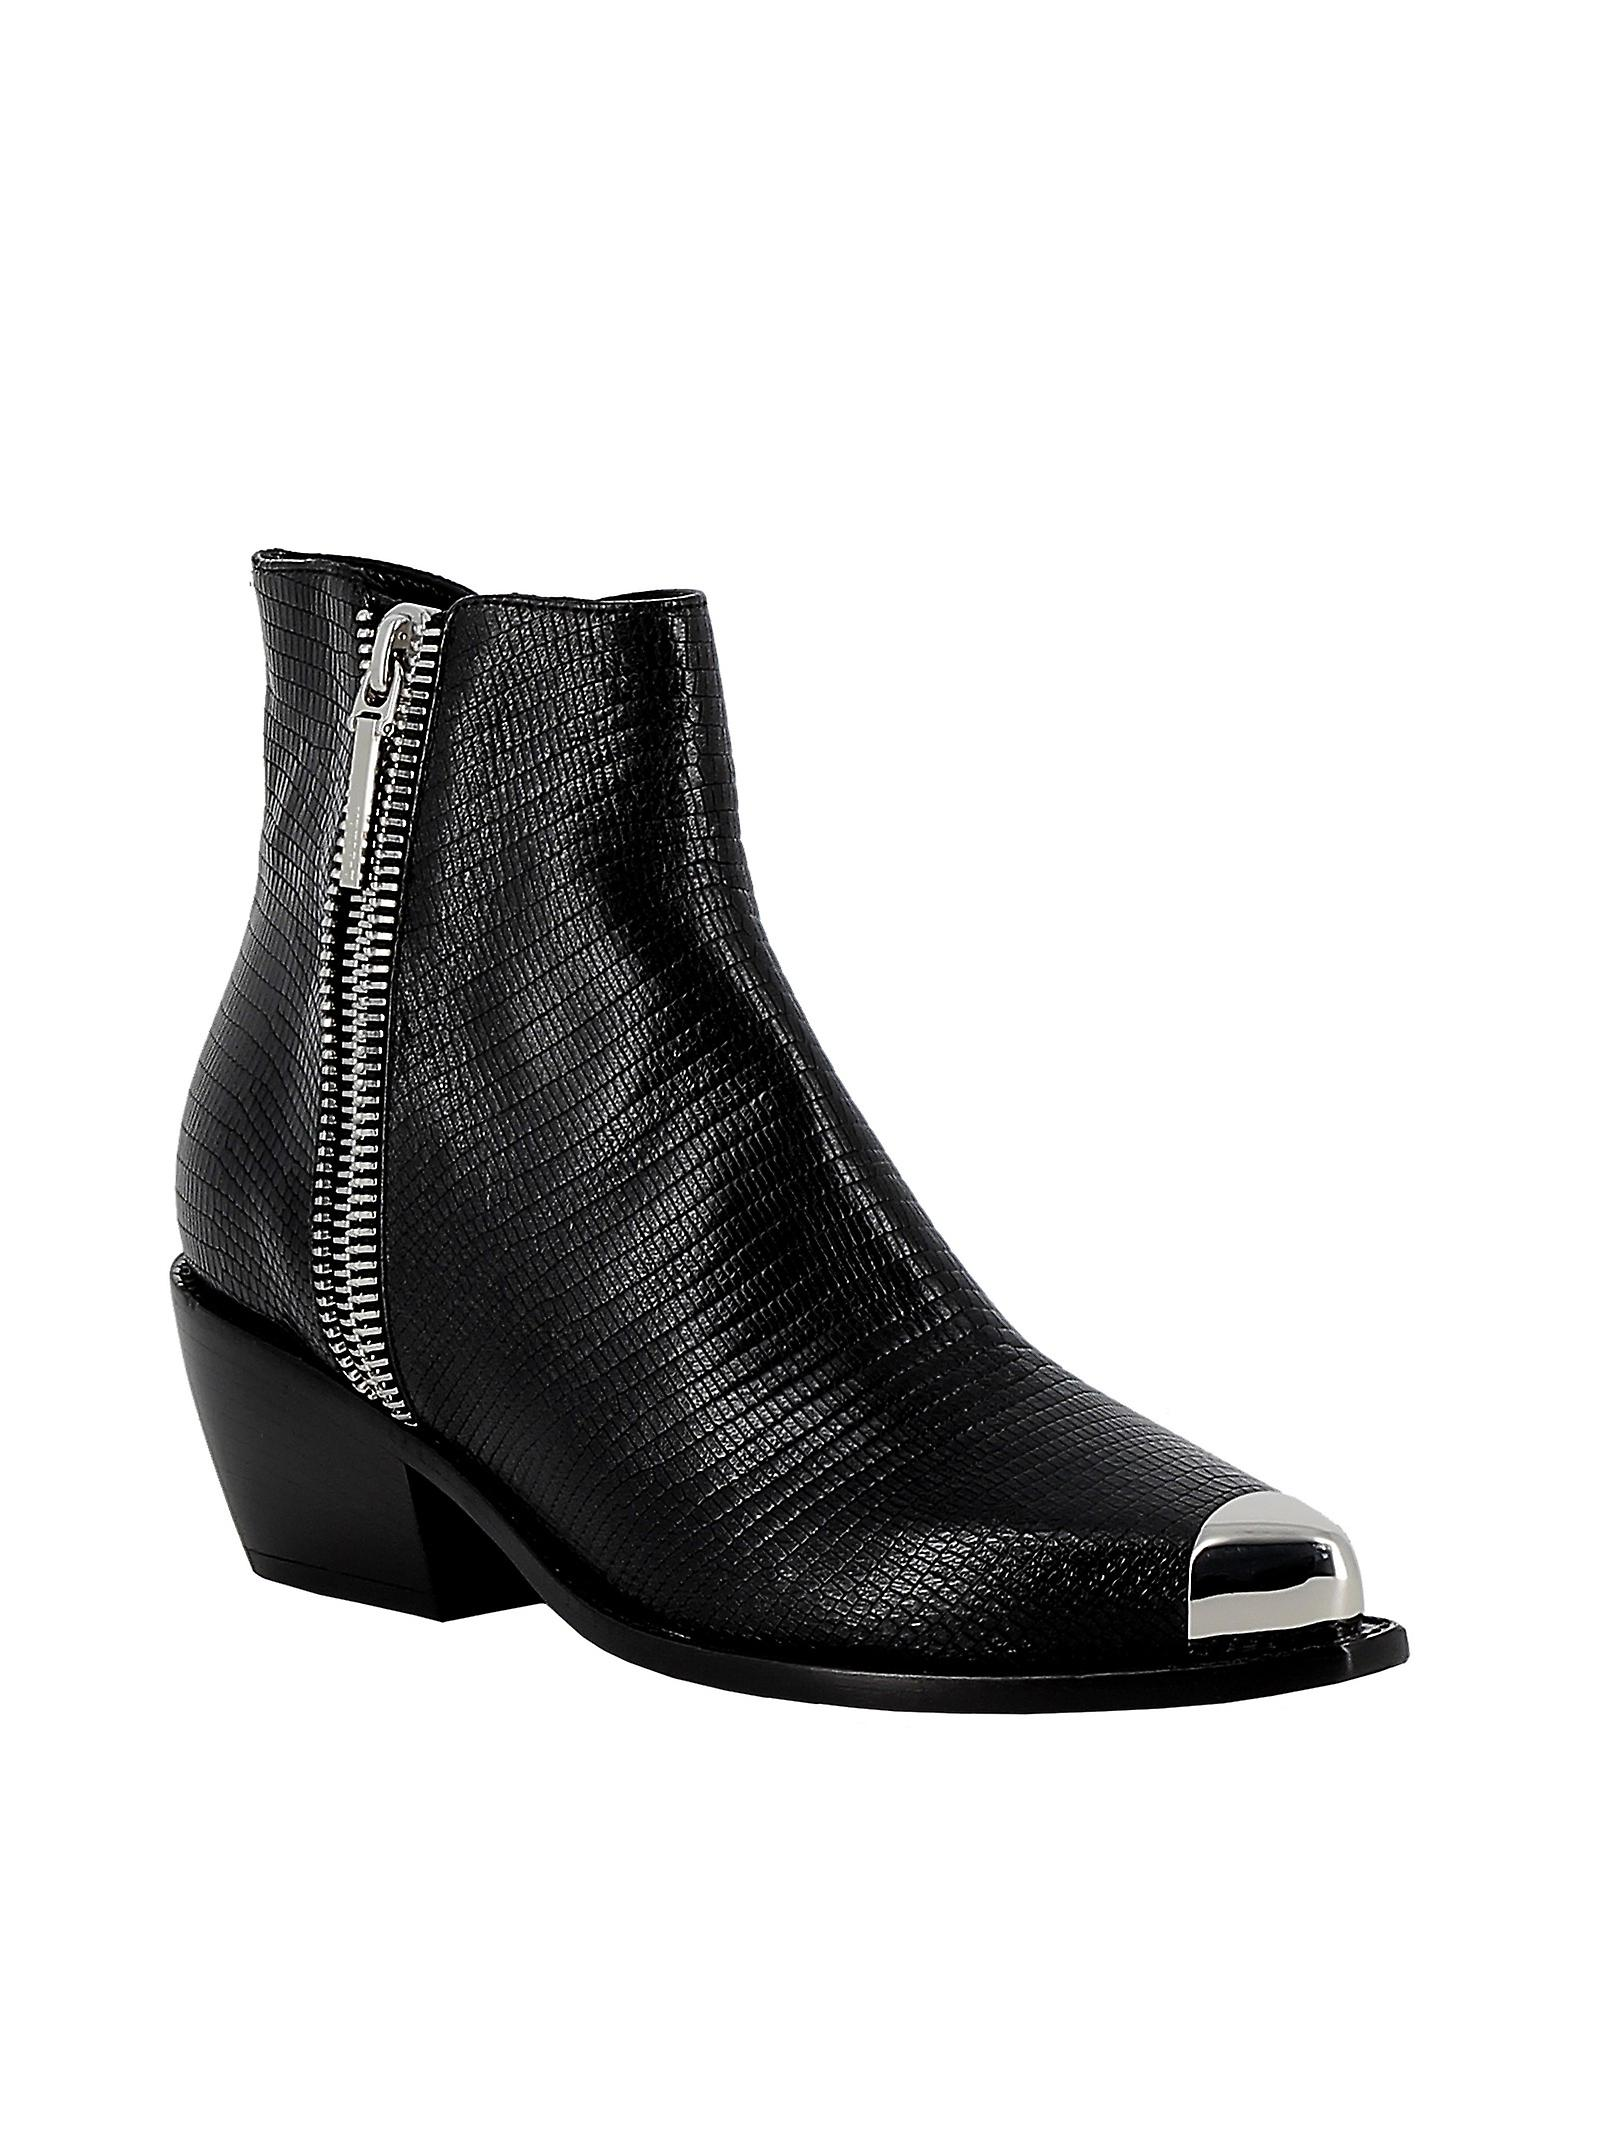 Le Silla 3801n040m1ppidr001 Women's Black Leather Ankle Boots